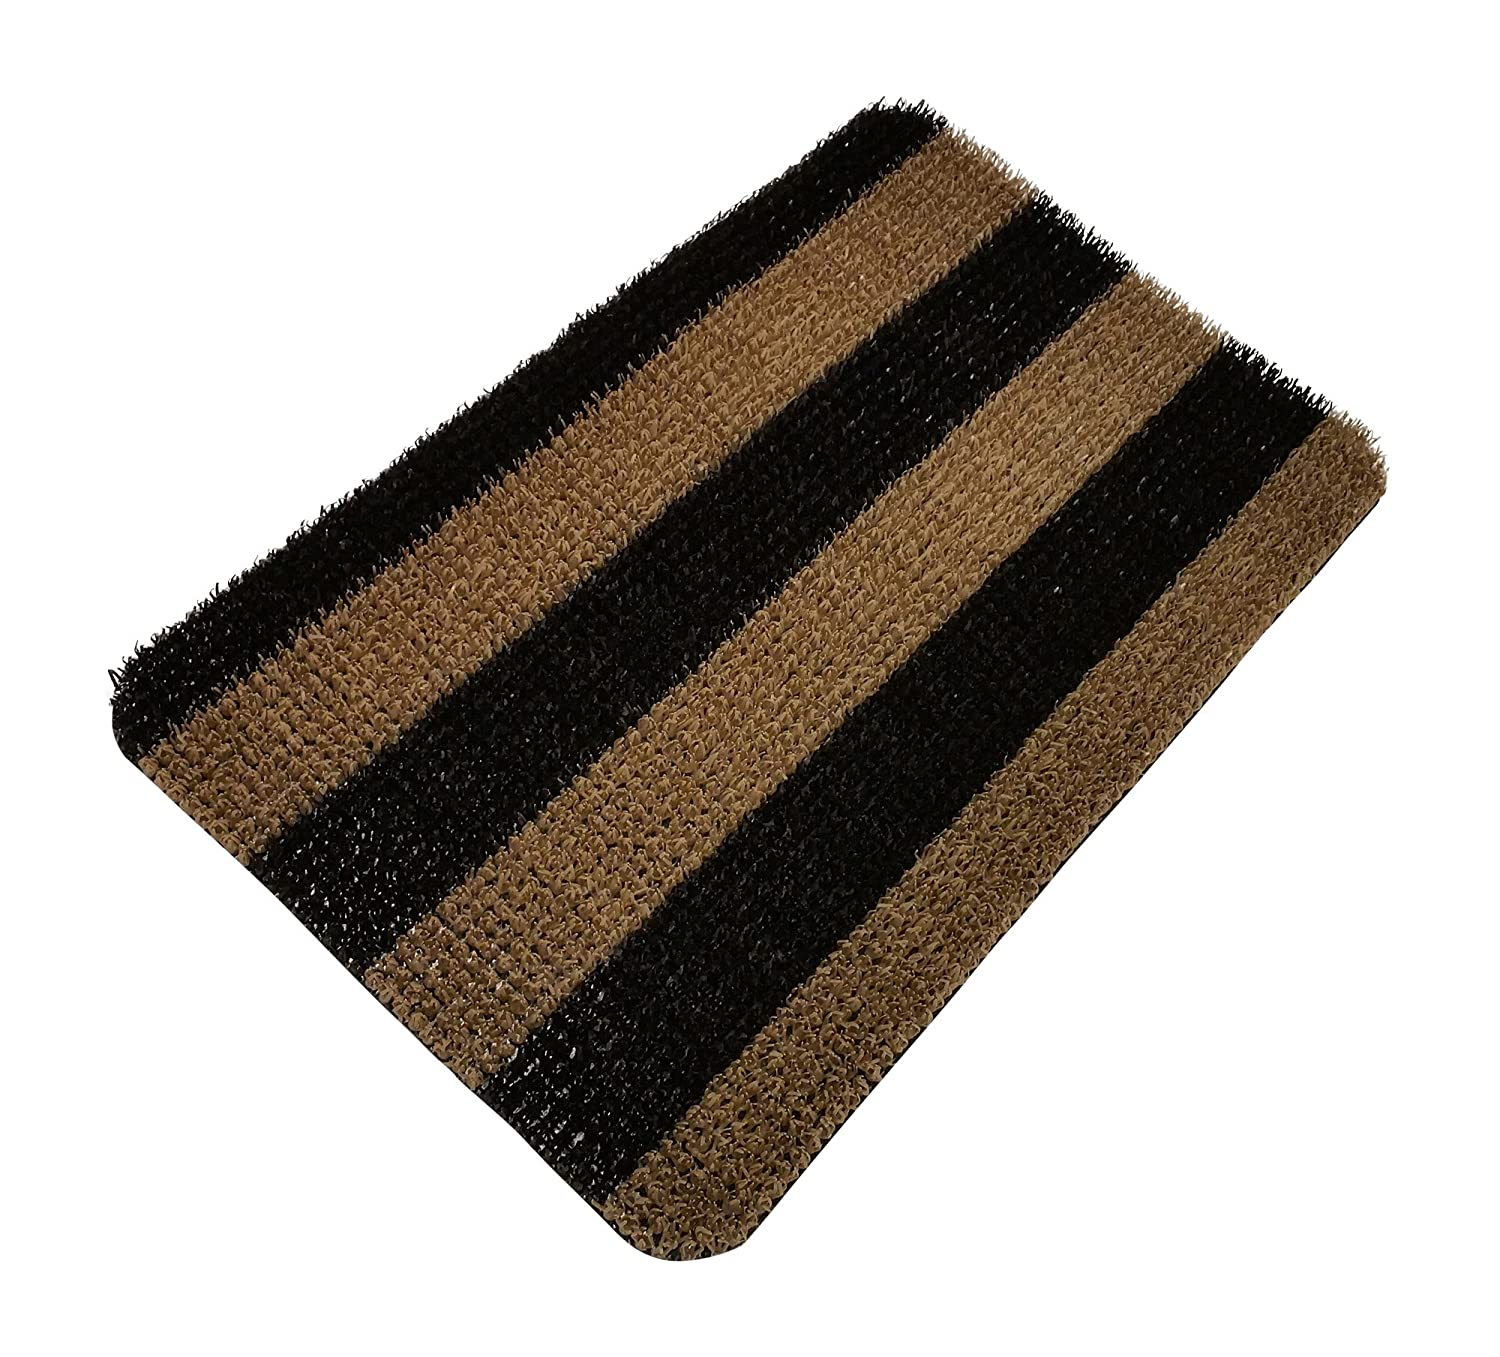 and mat cuddle in cute up mats welcome come door doormat img products funny